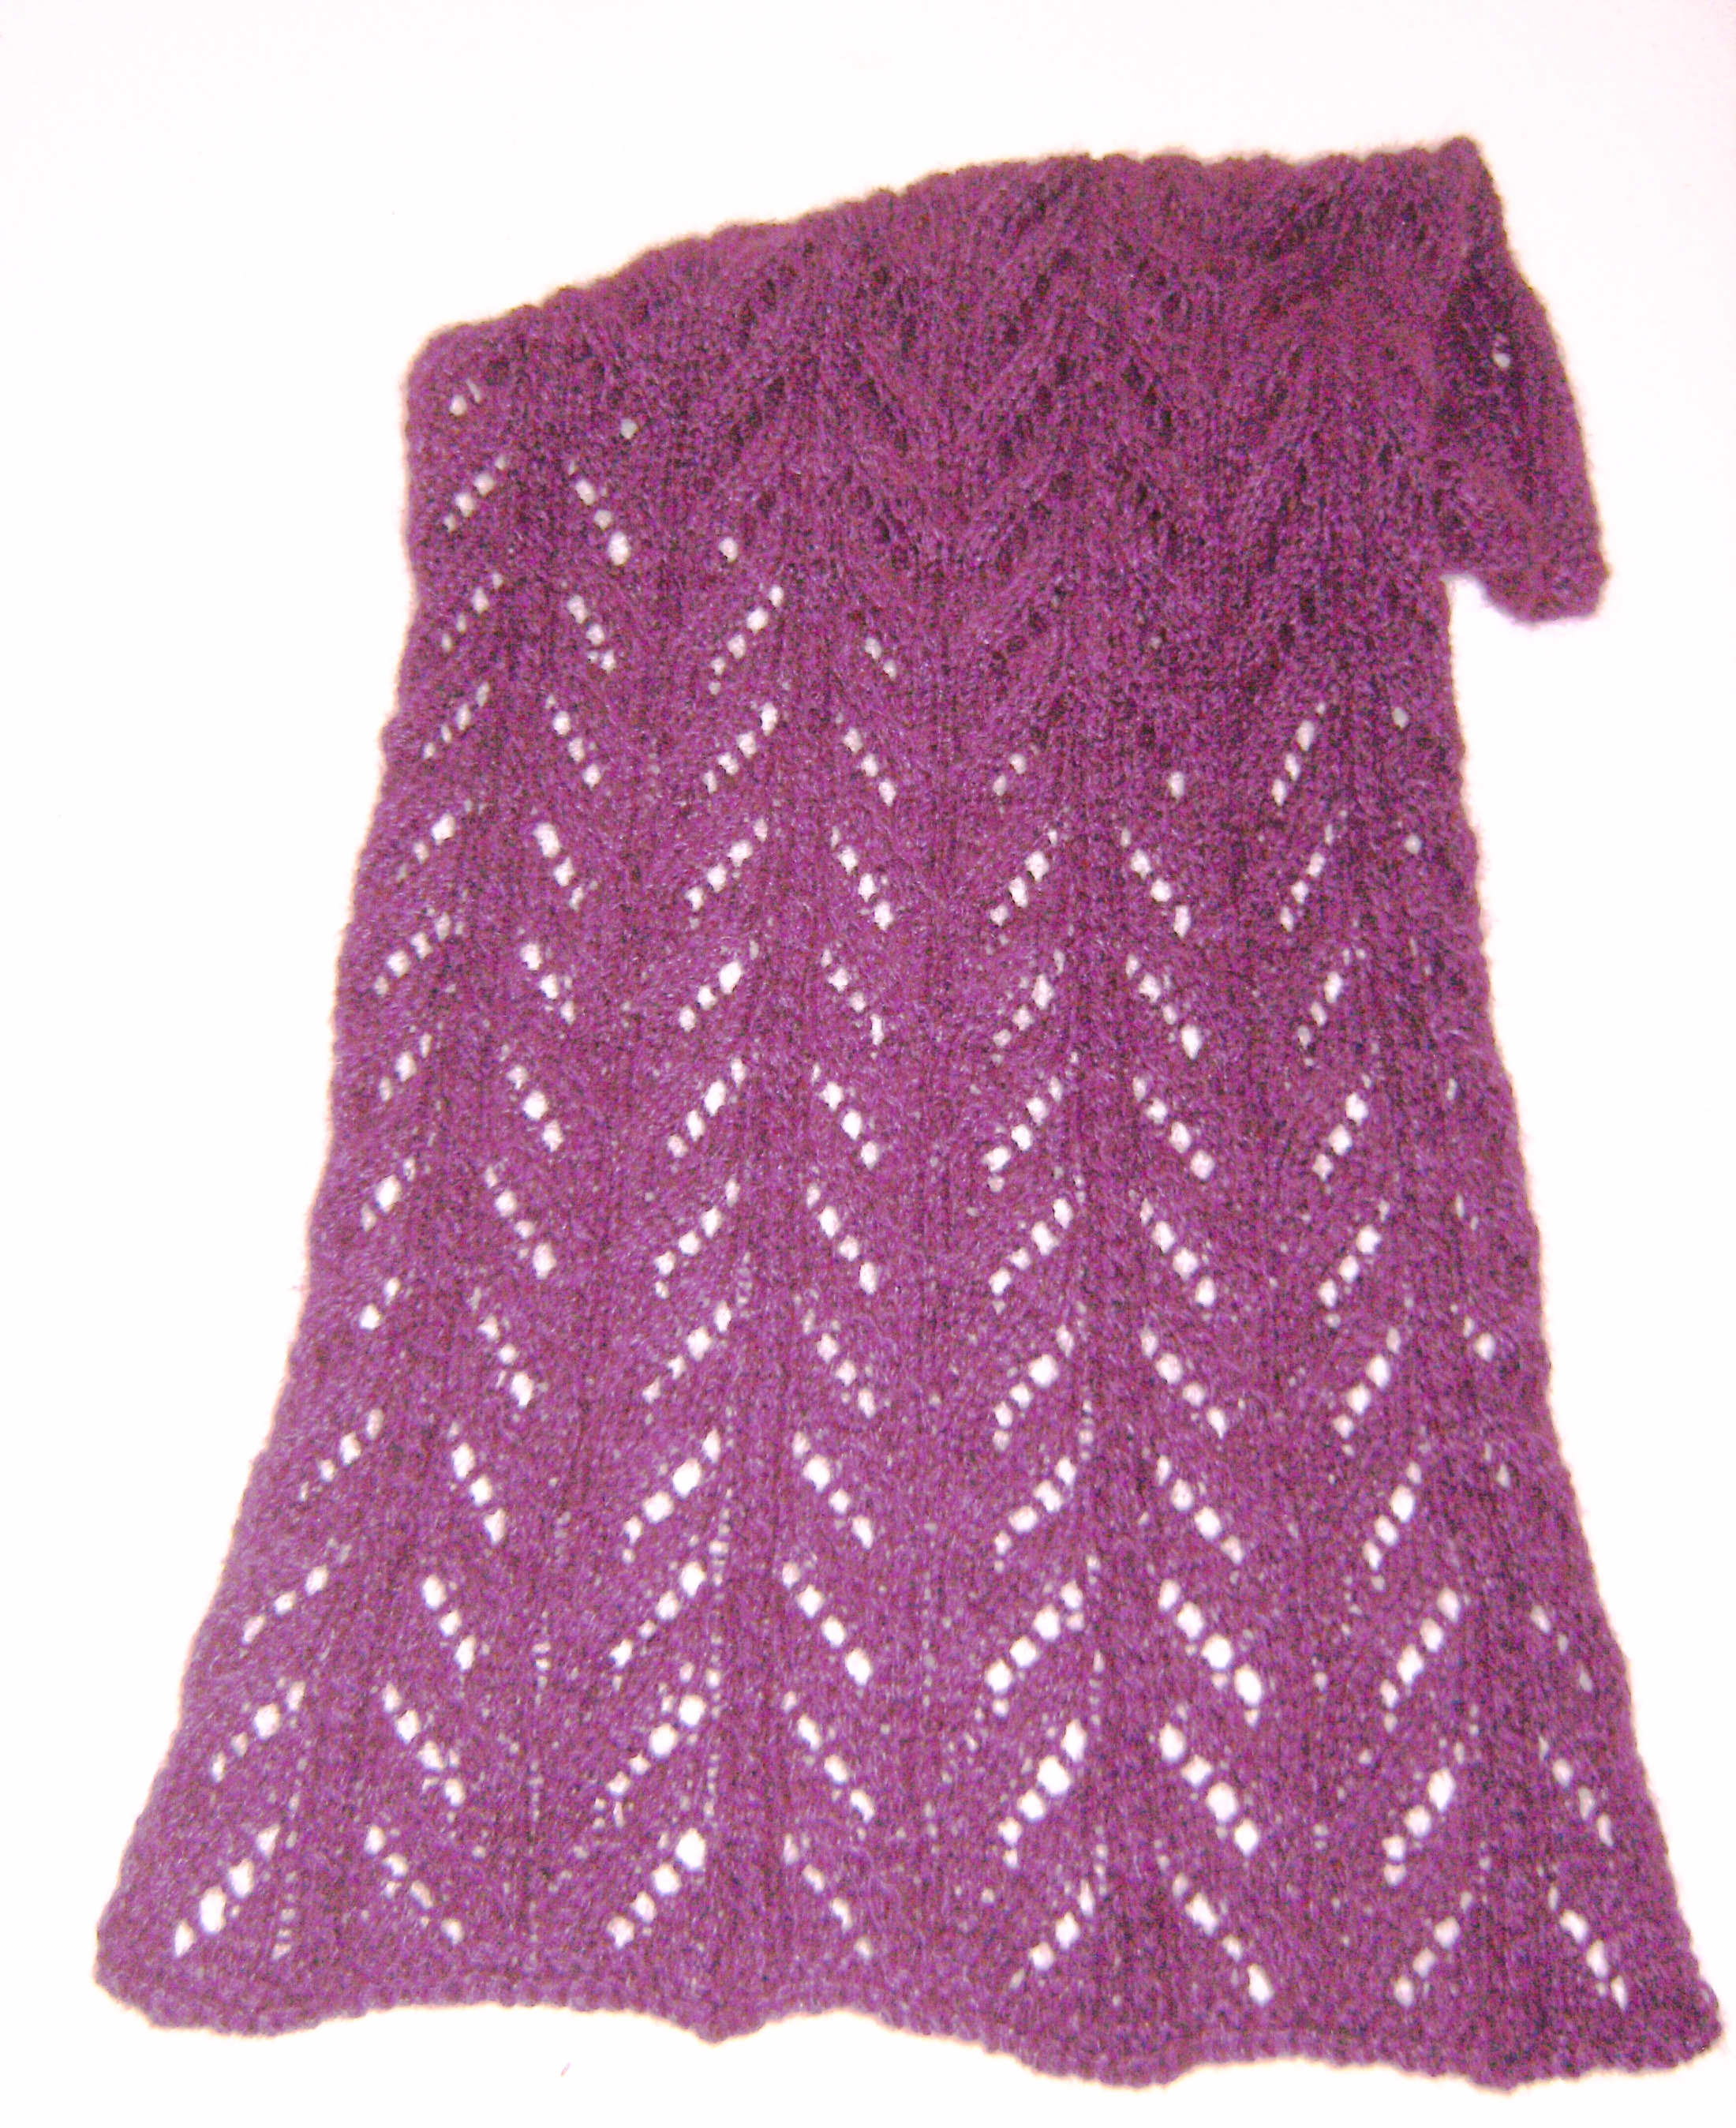 Crochet Lace Pattern For Beginners : FREE BEGINNER SCARF PATTERNS Free Patterns